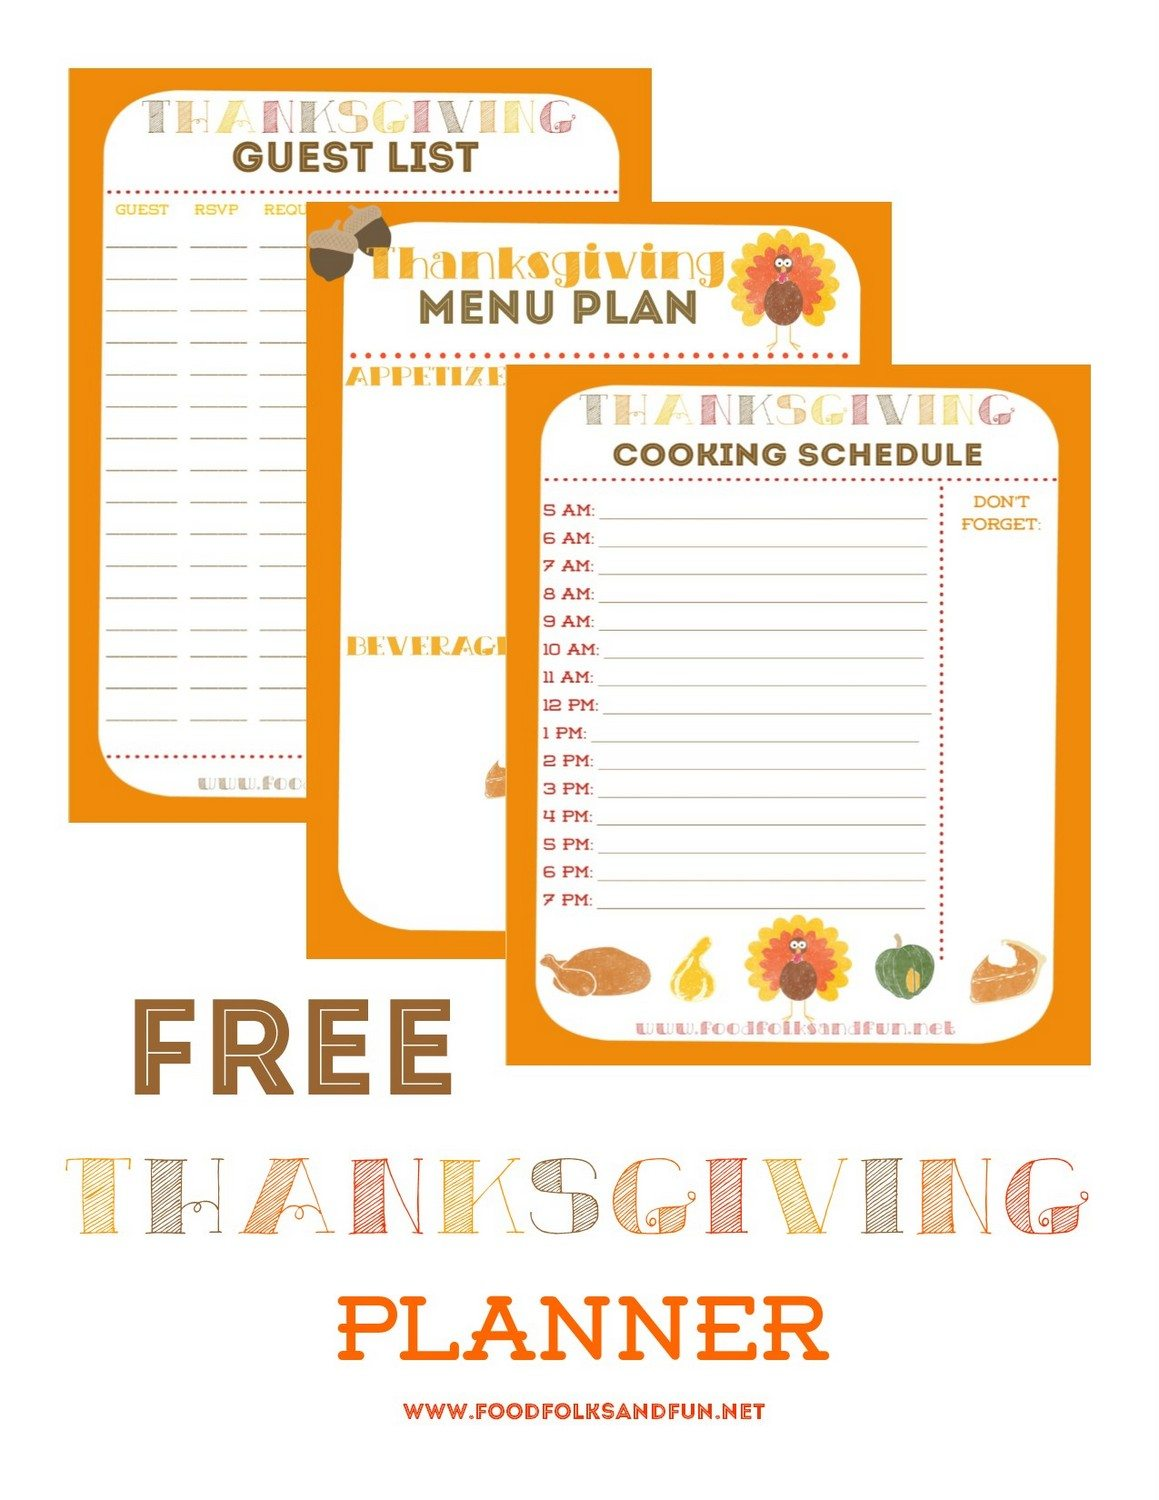 Free Thanksgiving Planner image with text overlay